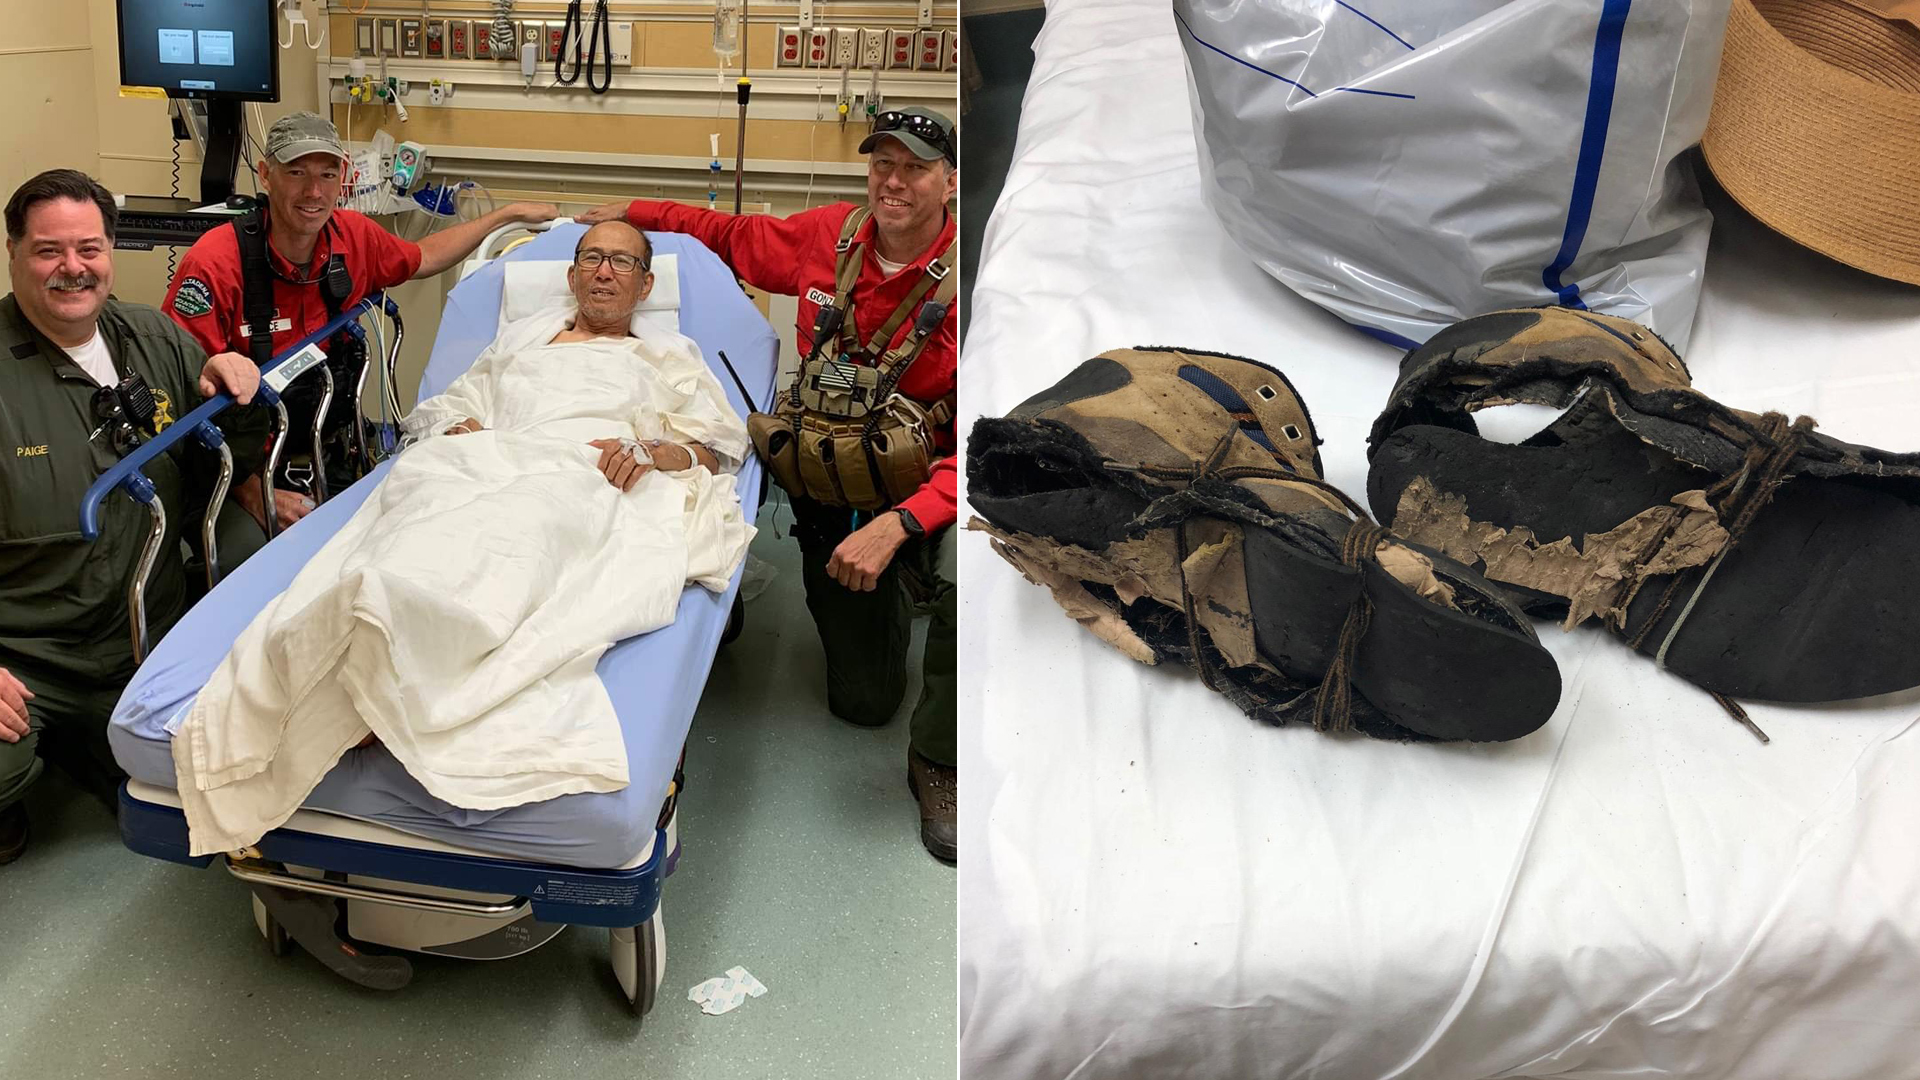 The Montrose Search and Rescue Team tweeted these photos on June 30, 2019 of Eugene Jo and his shoes after he was rescued in the San Gabriel Mountains.